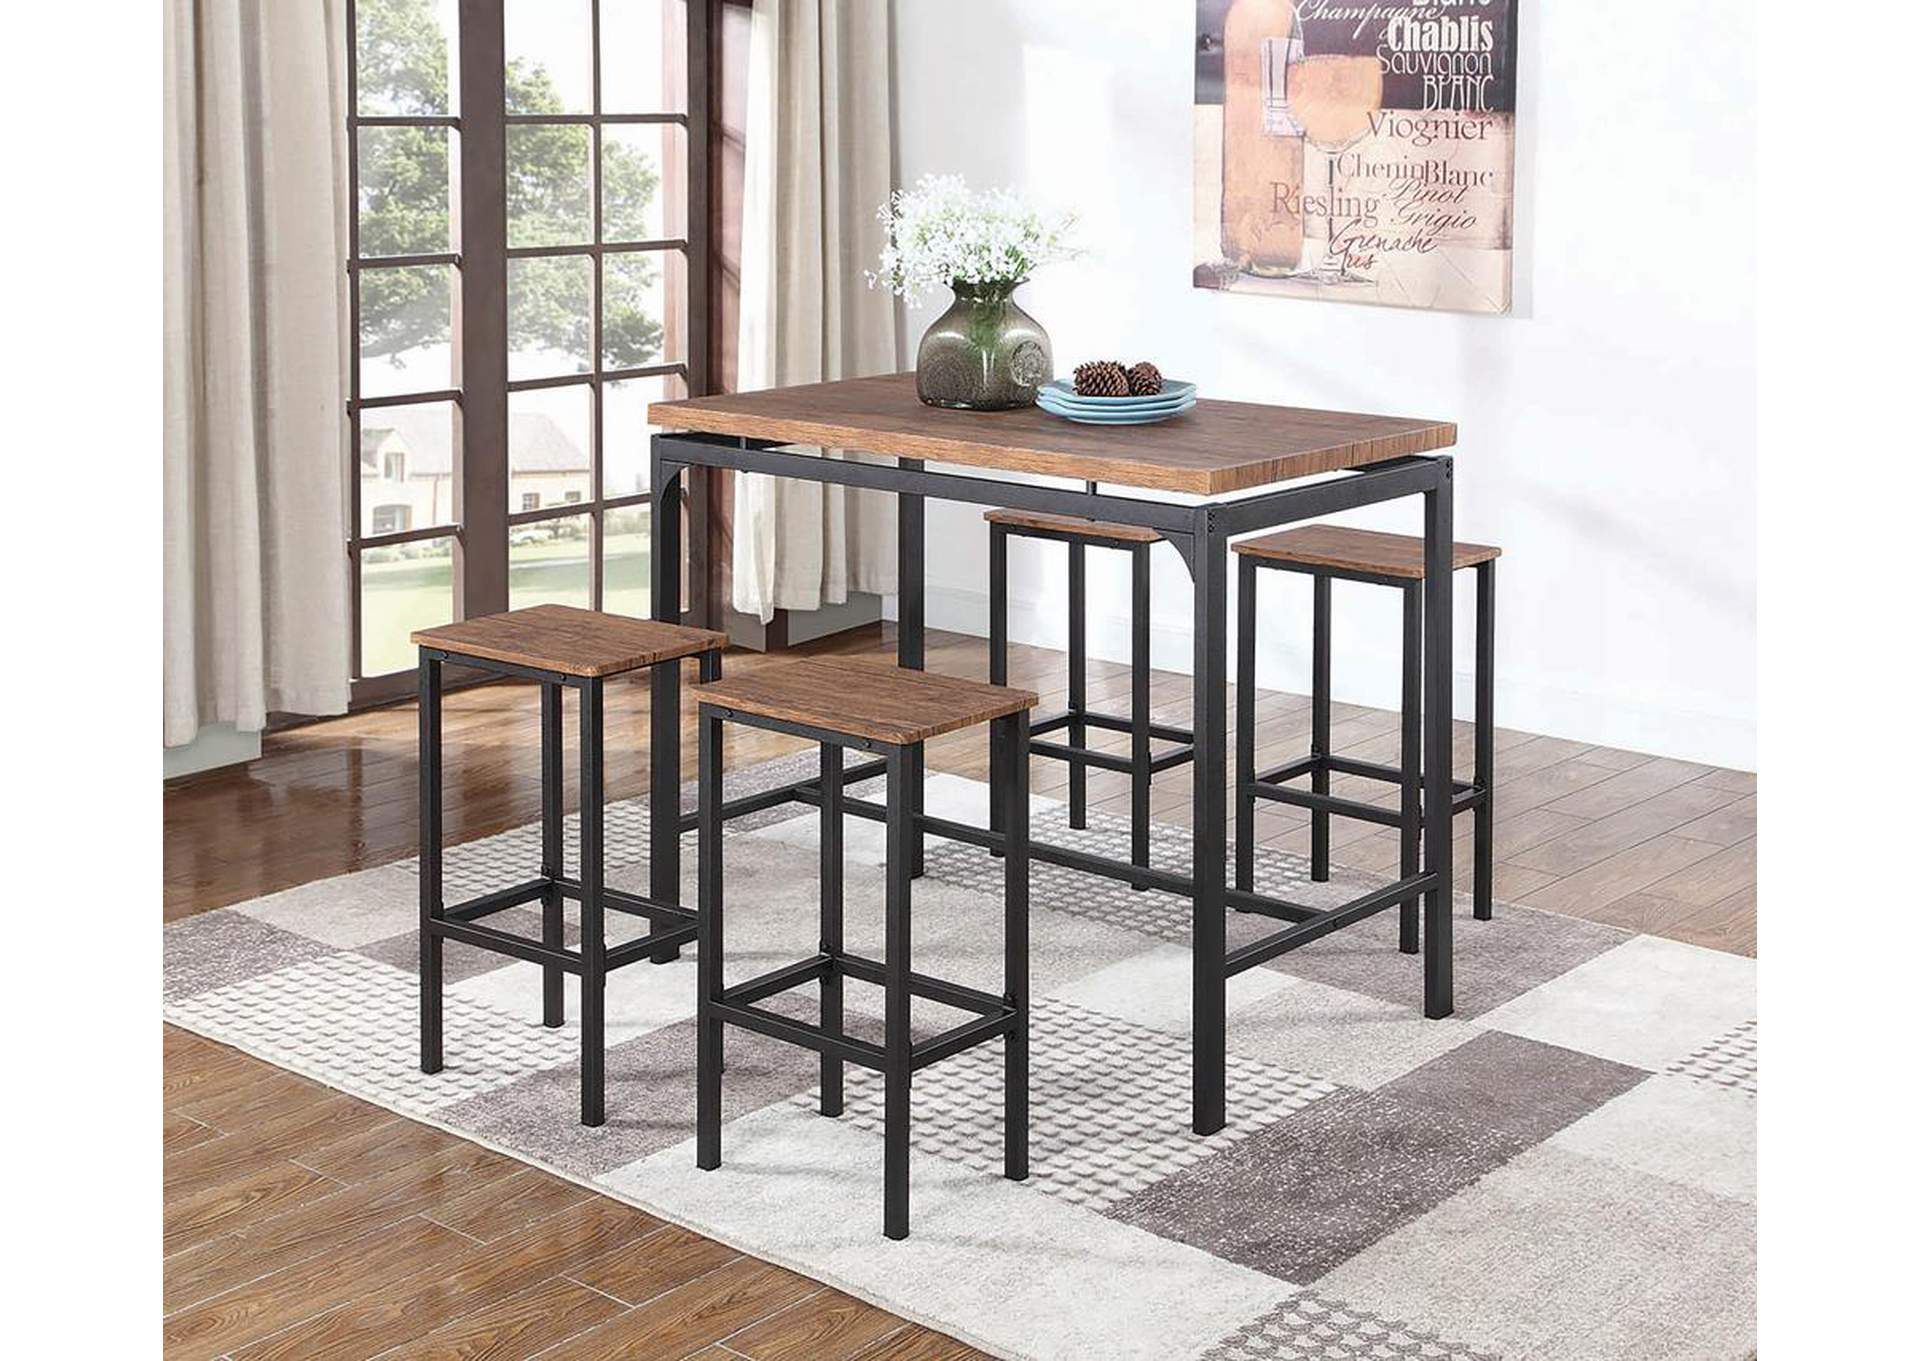 Weathered Chestnut Contemporary Five-Piece Bar Set,Coaster Furniture